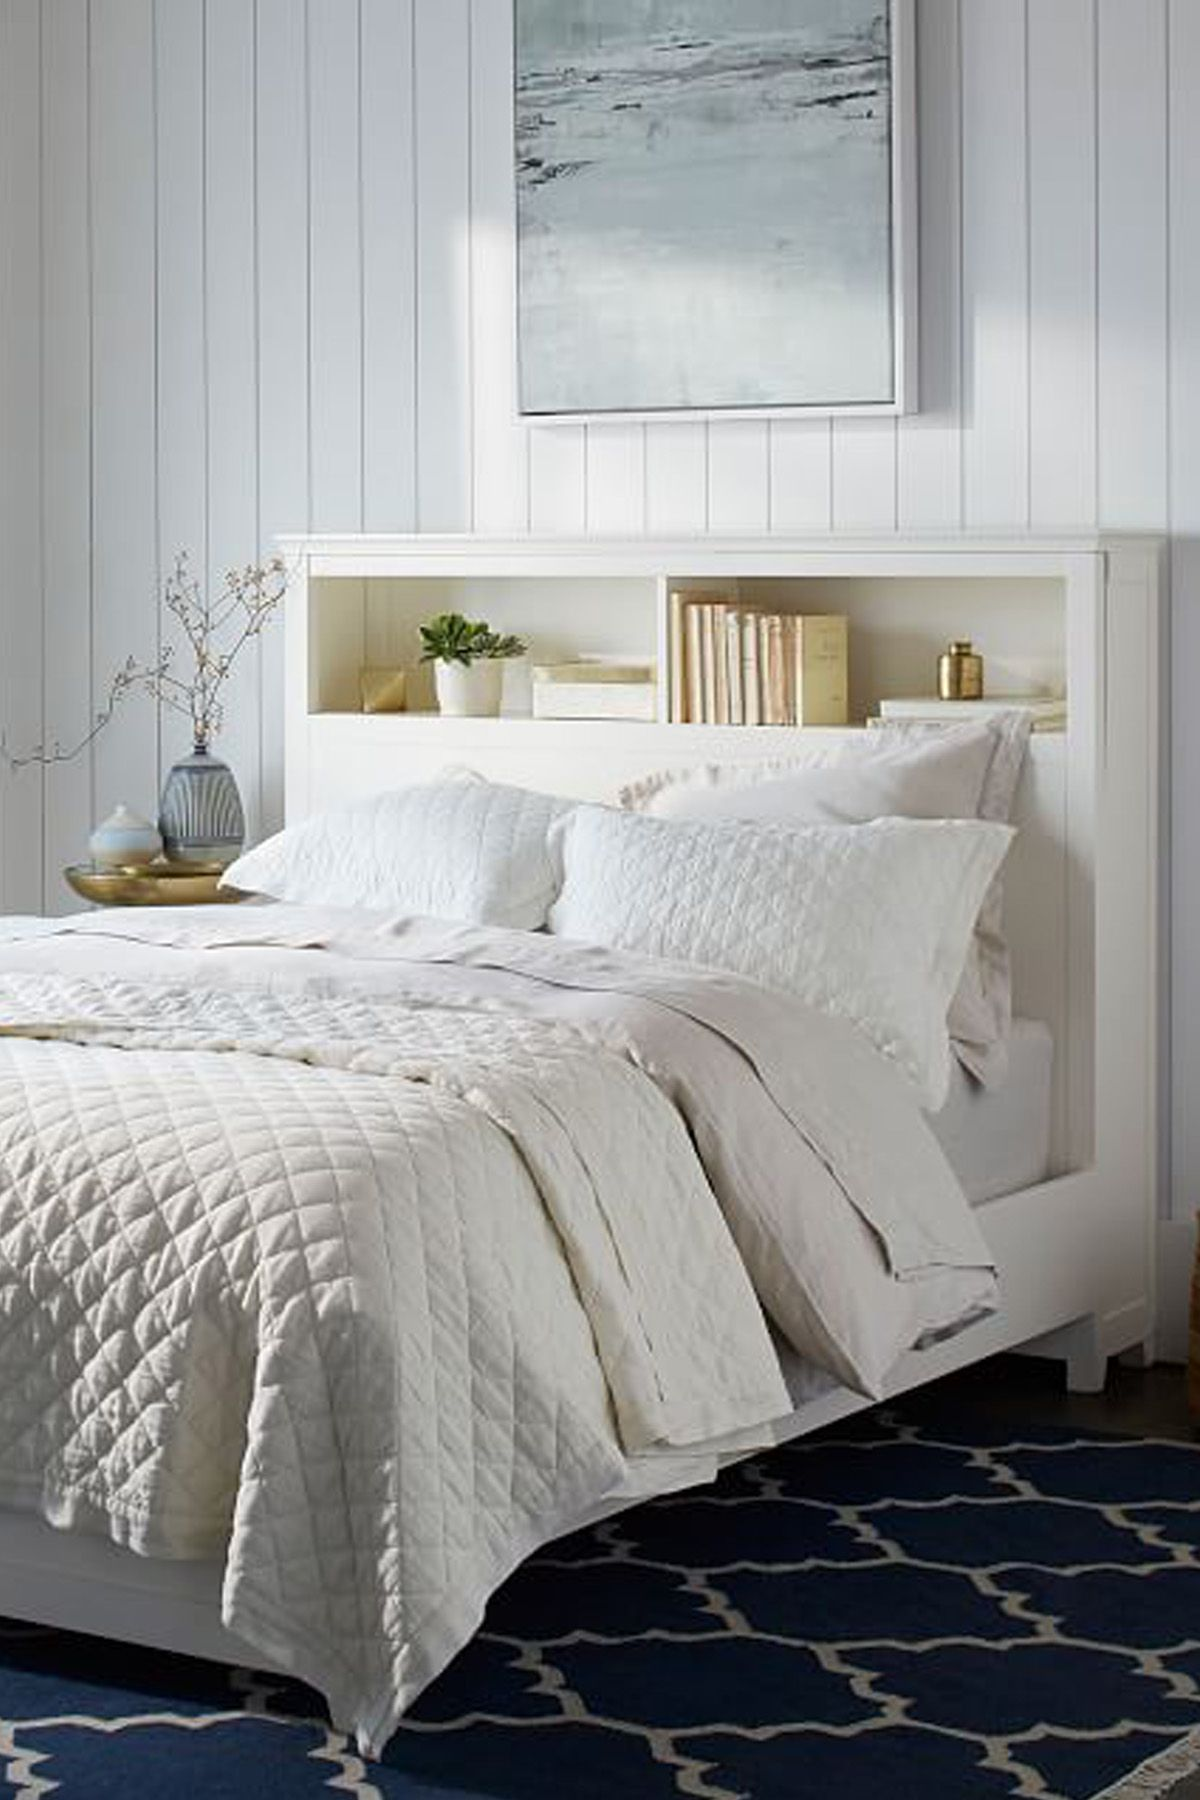 20 best headboard ideas unique designs for bed headboards rh housebeautiful com